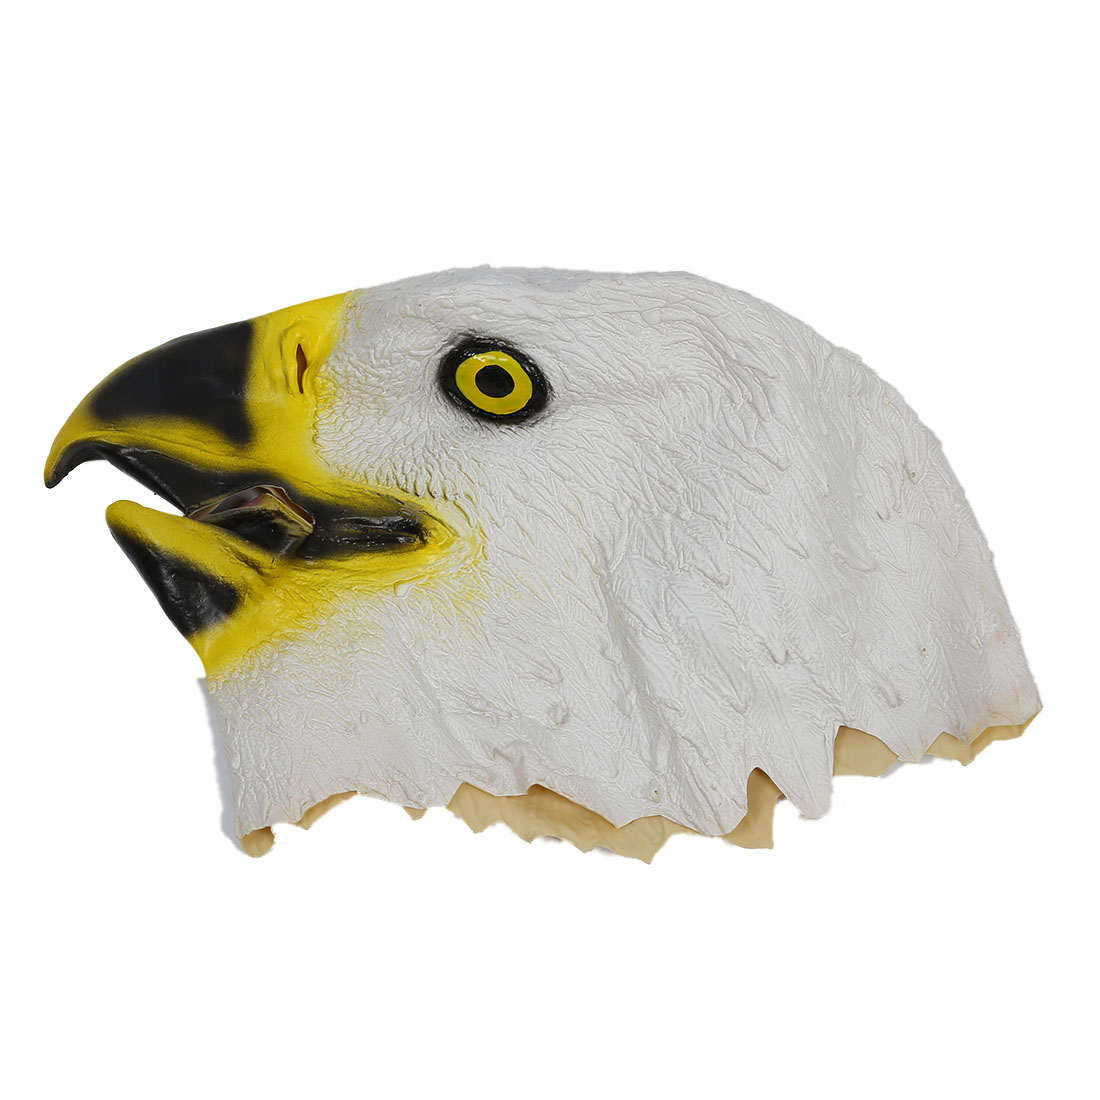 HOT SALE Creepy eagle head Mask for Halloween kids toy childrens gifts